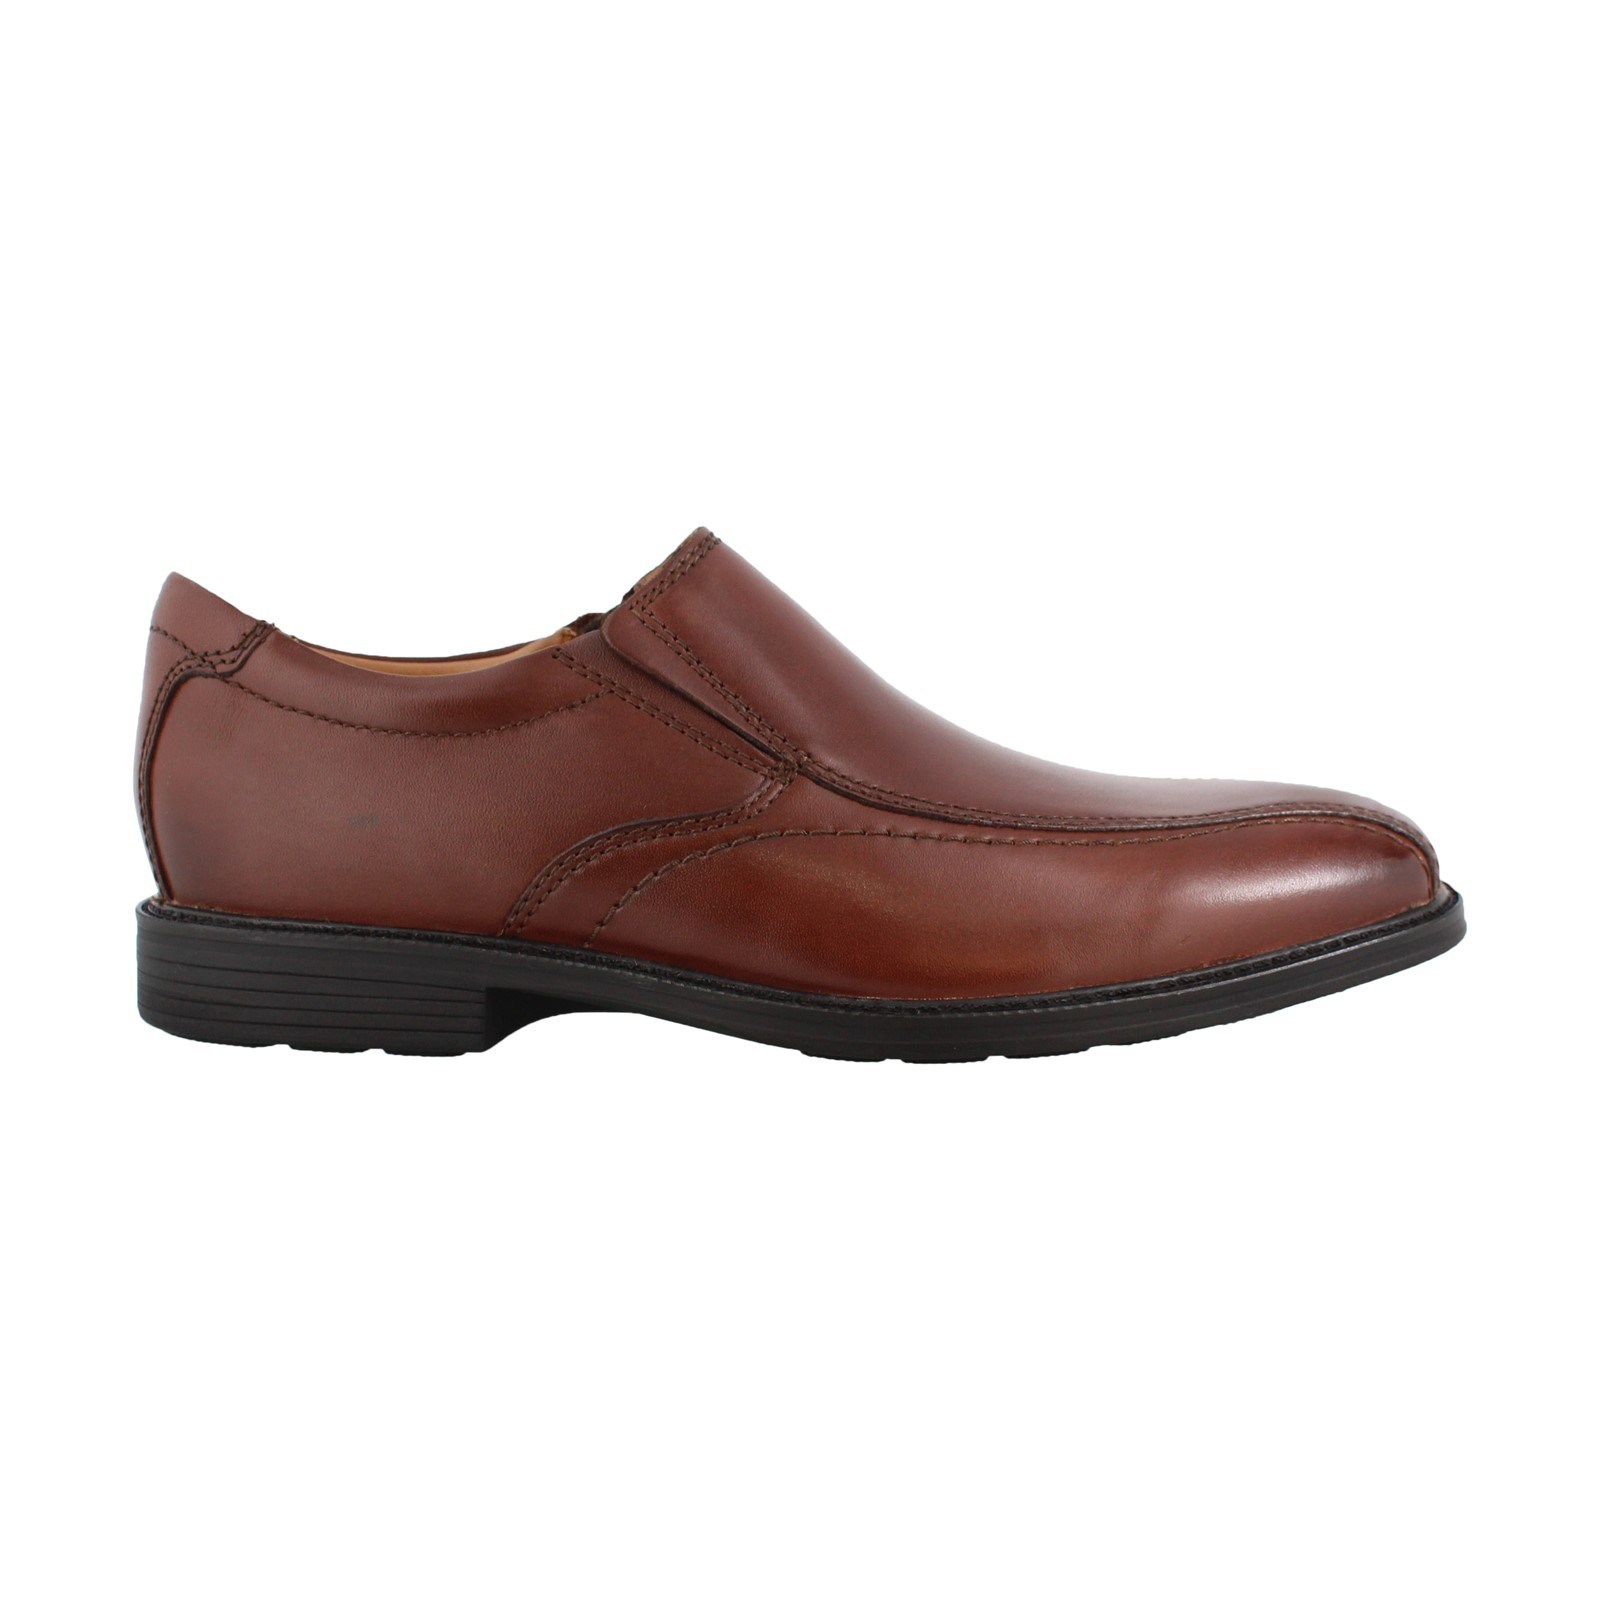 Men's Bostonian, Hazlet Step Loafer